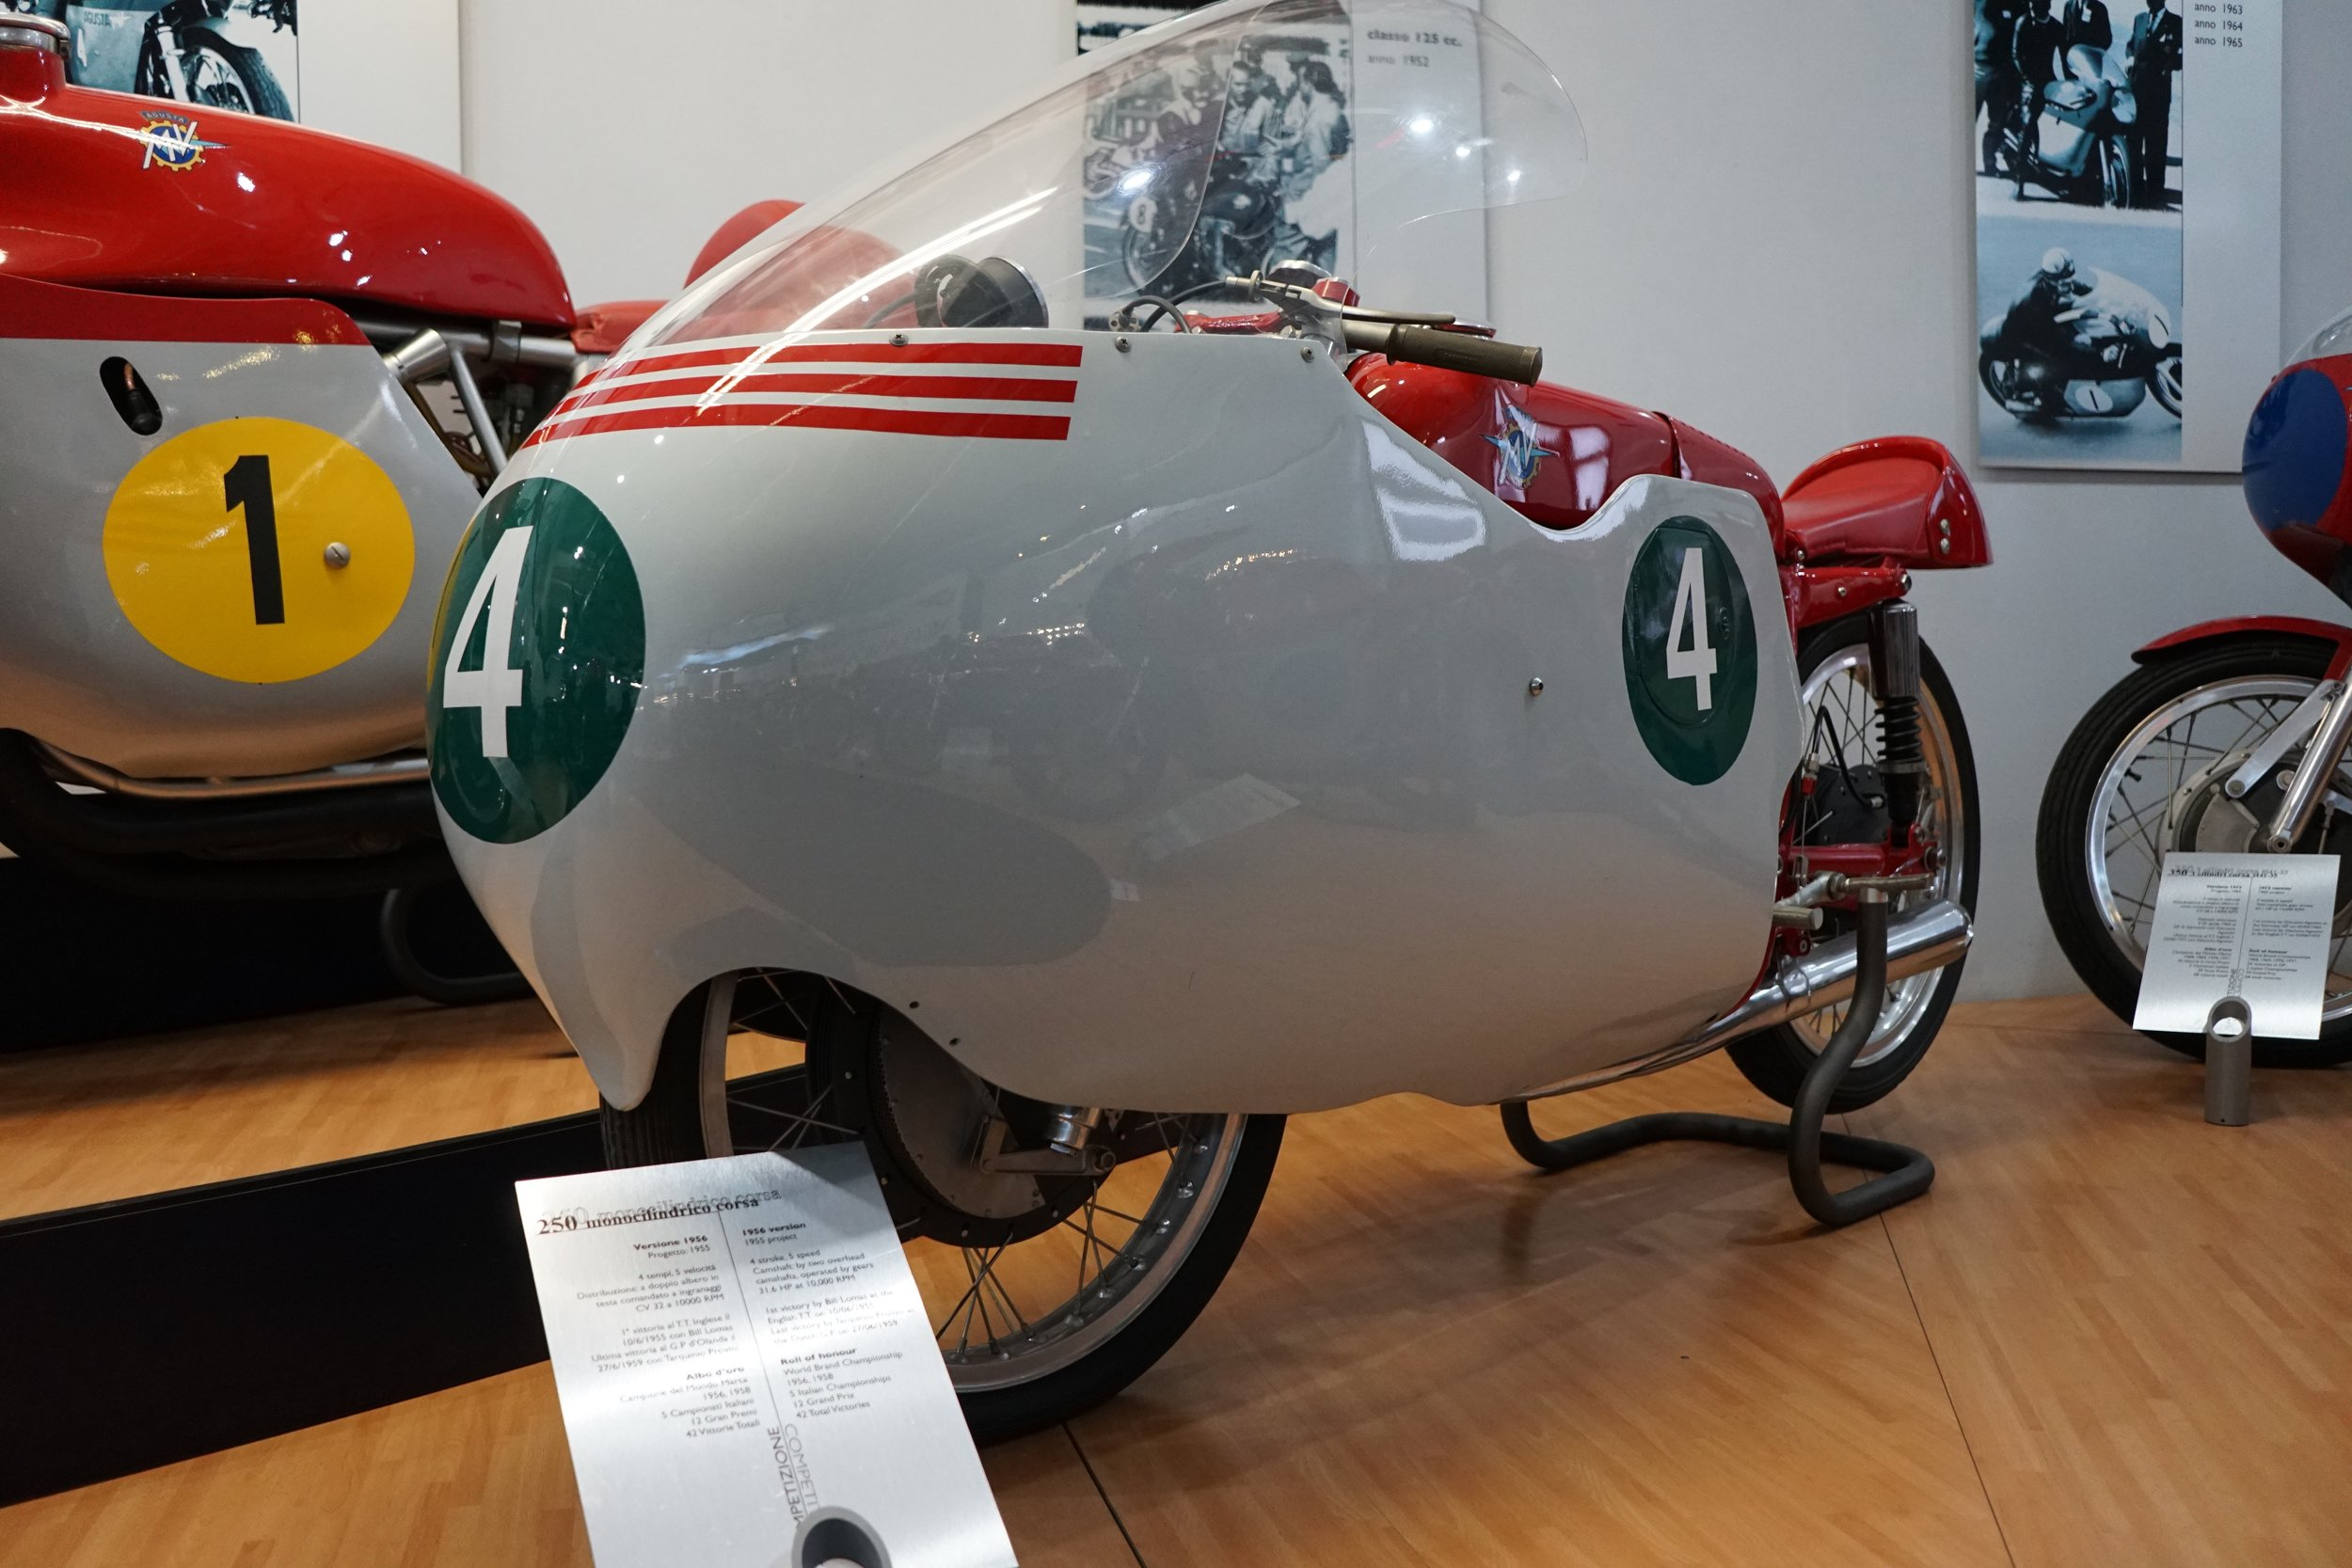 '56 250 Monocilindrico Corsa – 250cc single, DOHC, five speeds. Bill Lomas delivered the first GP win for this elegant machine at the 1955 TT.